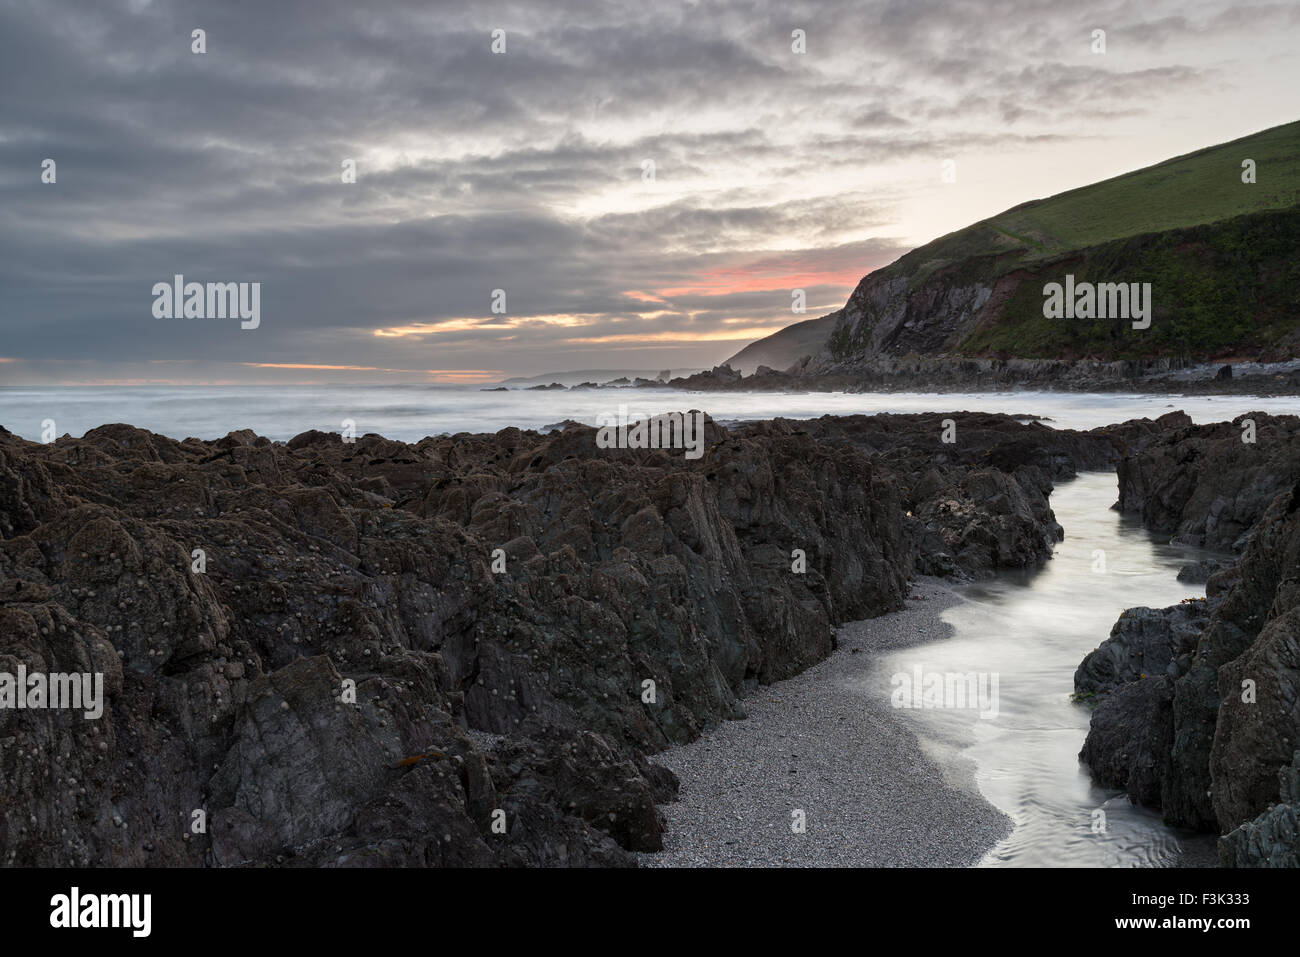 A stormy night on the beach at Portwrinkle of the south coast of Cornwall Stock Photo